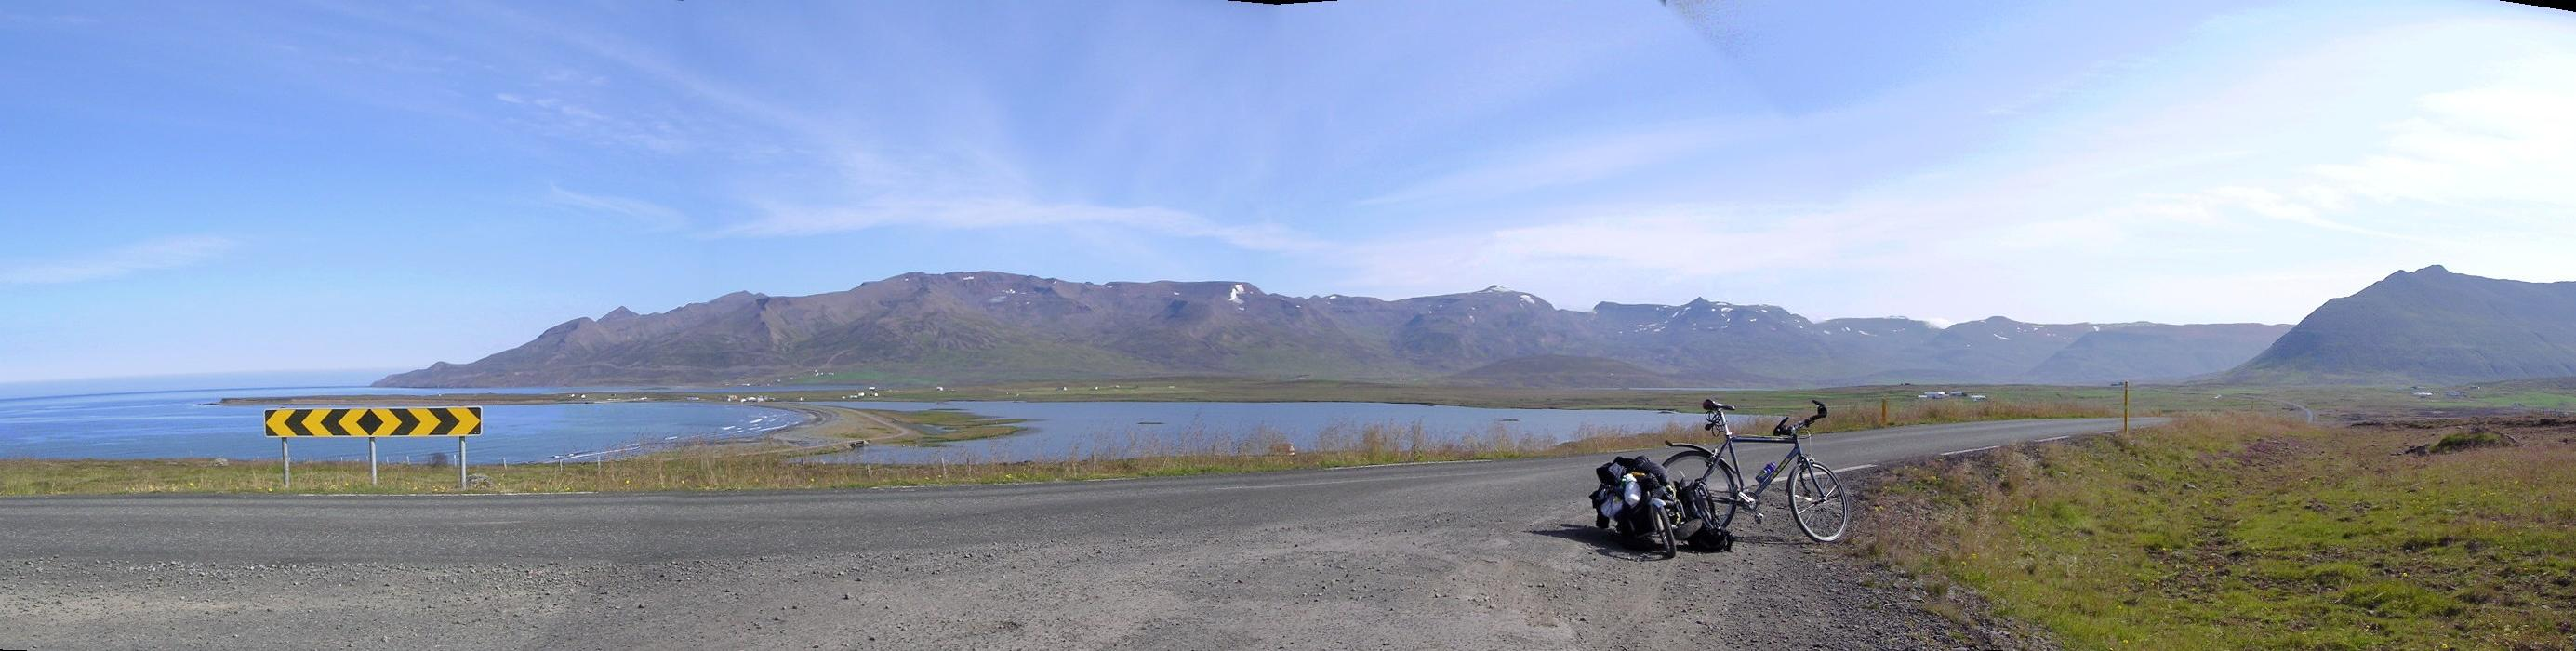 My bike on the northern coast of iceland near the crossroads to